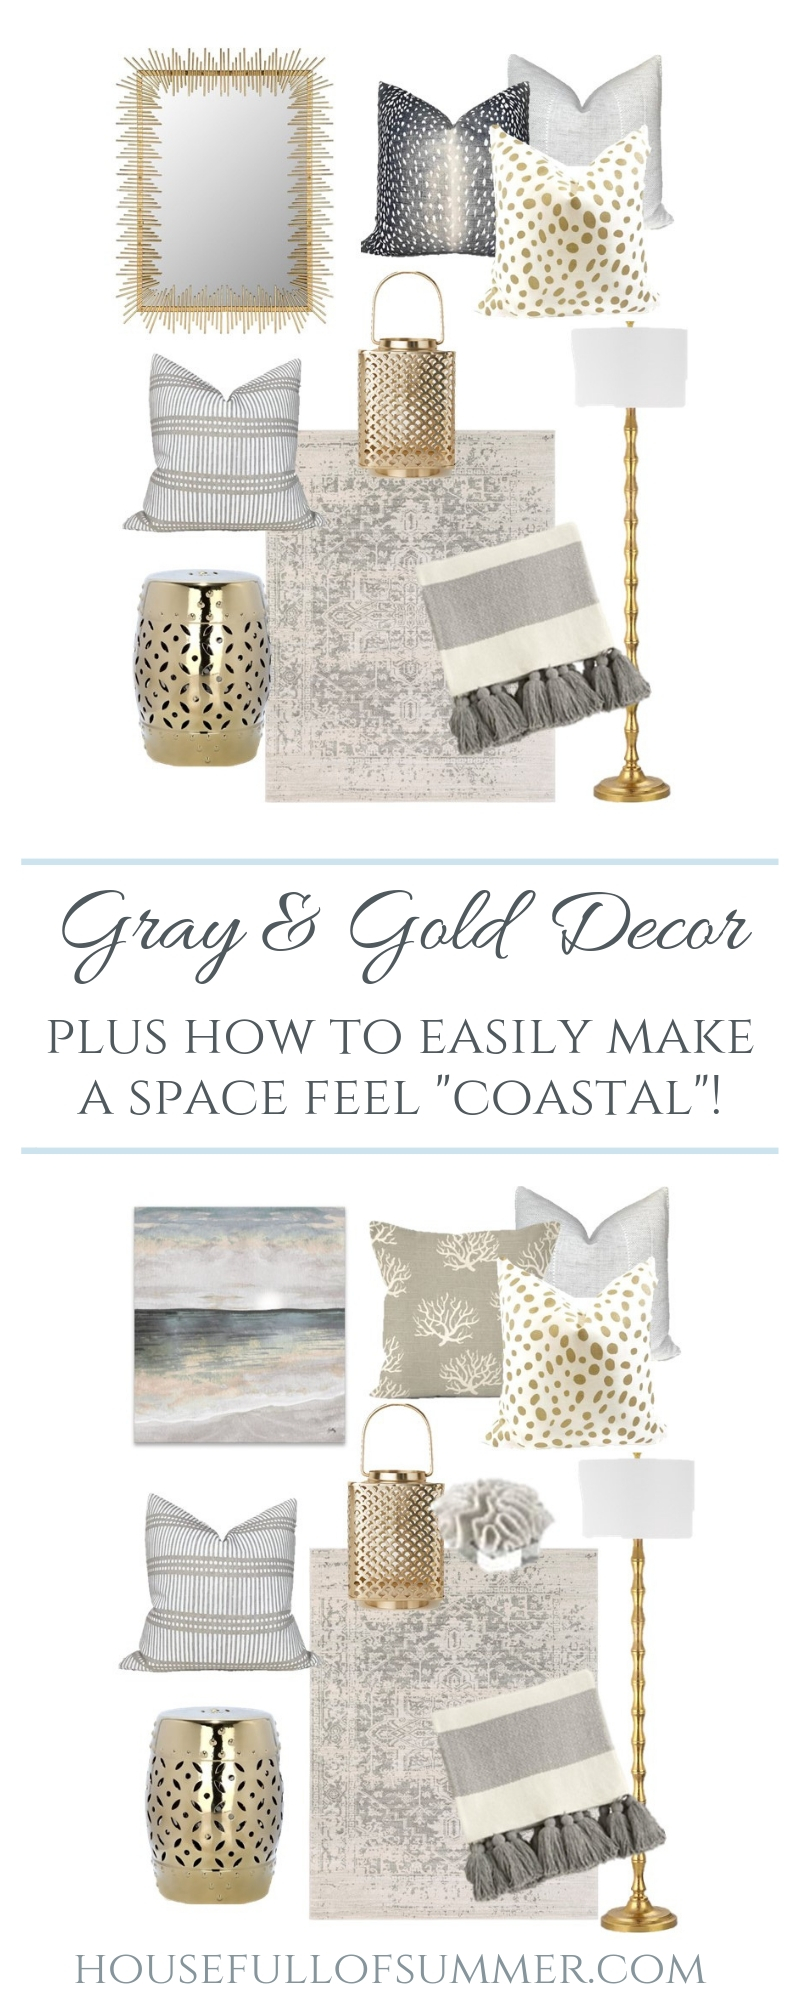 Gray and Gold Decor Mood Board - Plus how to easily make a space feel coastal. Easy decor switches to take you from one season to the next! | House Full of Summer, coastal decor, living room design, coastal chic living room styling, gold mirror, neutral beach decor, gray beach painting art, #housefullofsummer #coastaldecor